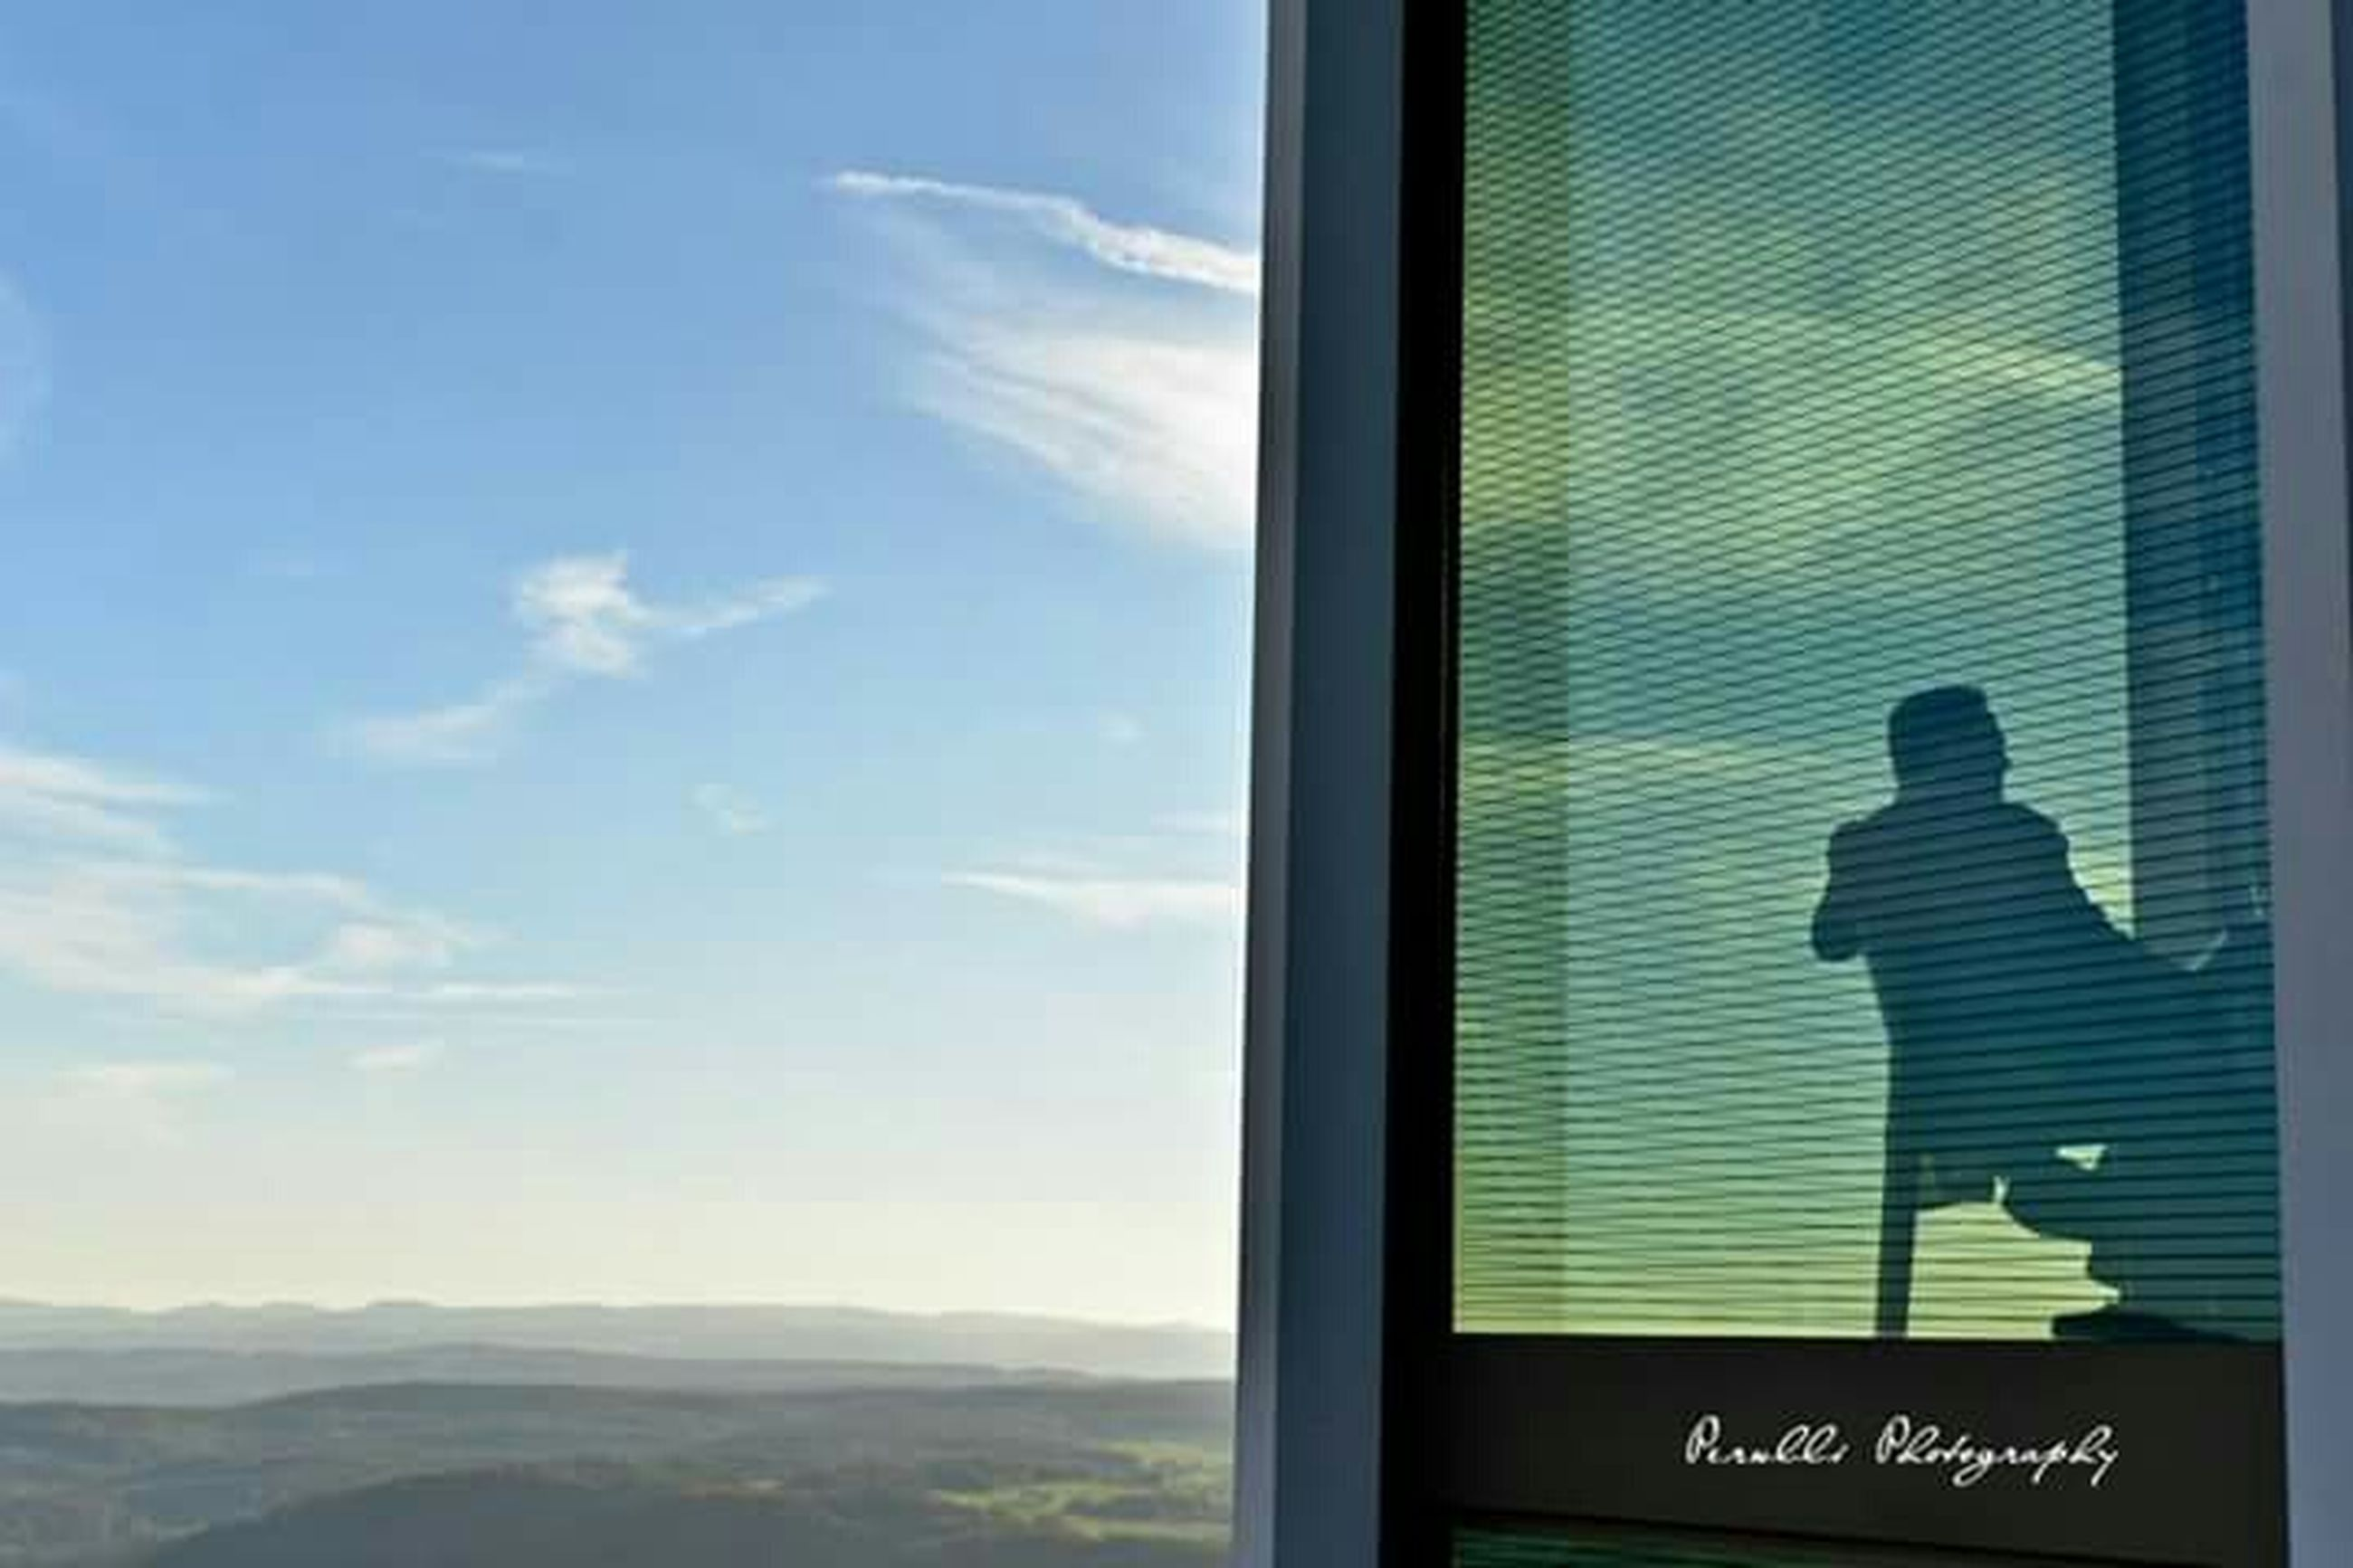 window, sky, indoors, glass - material, silhouette, transparent, day, cloud, cloud - sky, sunlight, mountain, communication, built structure, architecture, curtain, nature, looking through window, lifestyles